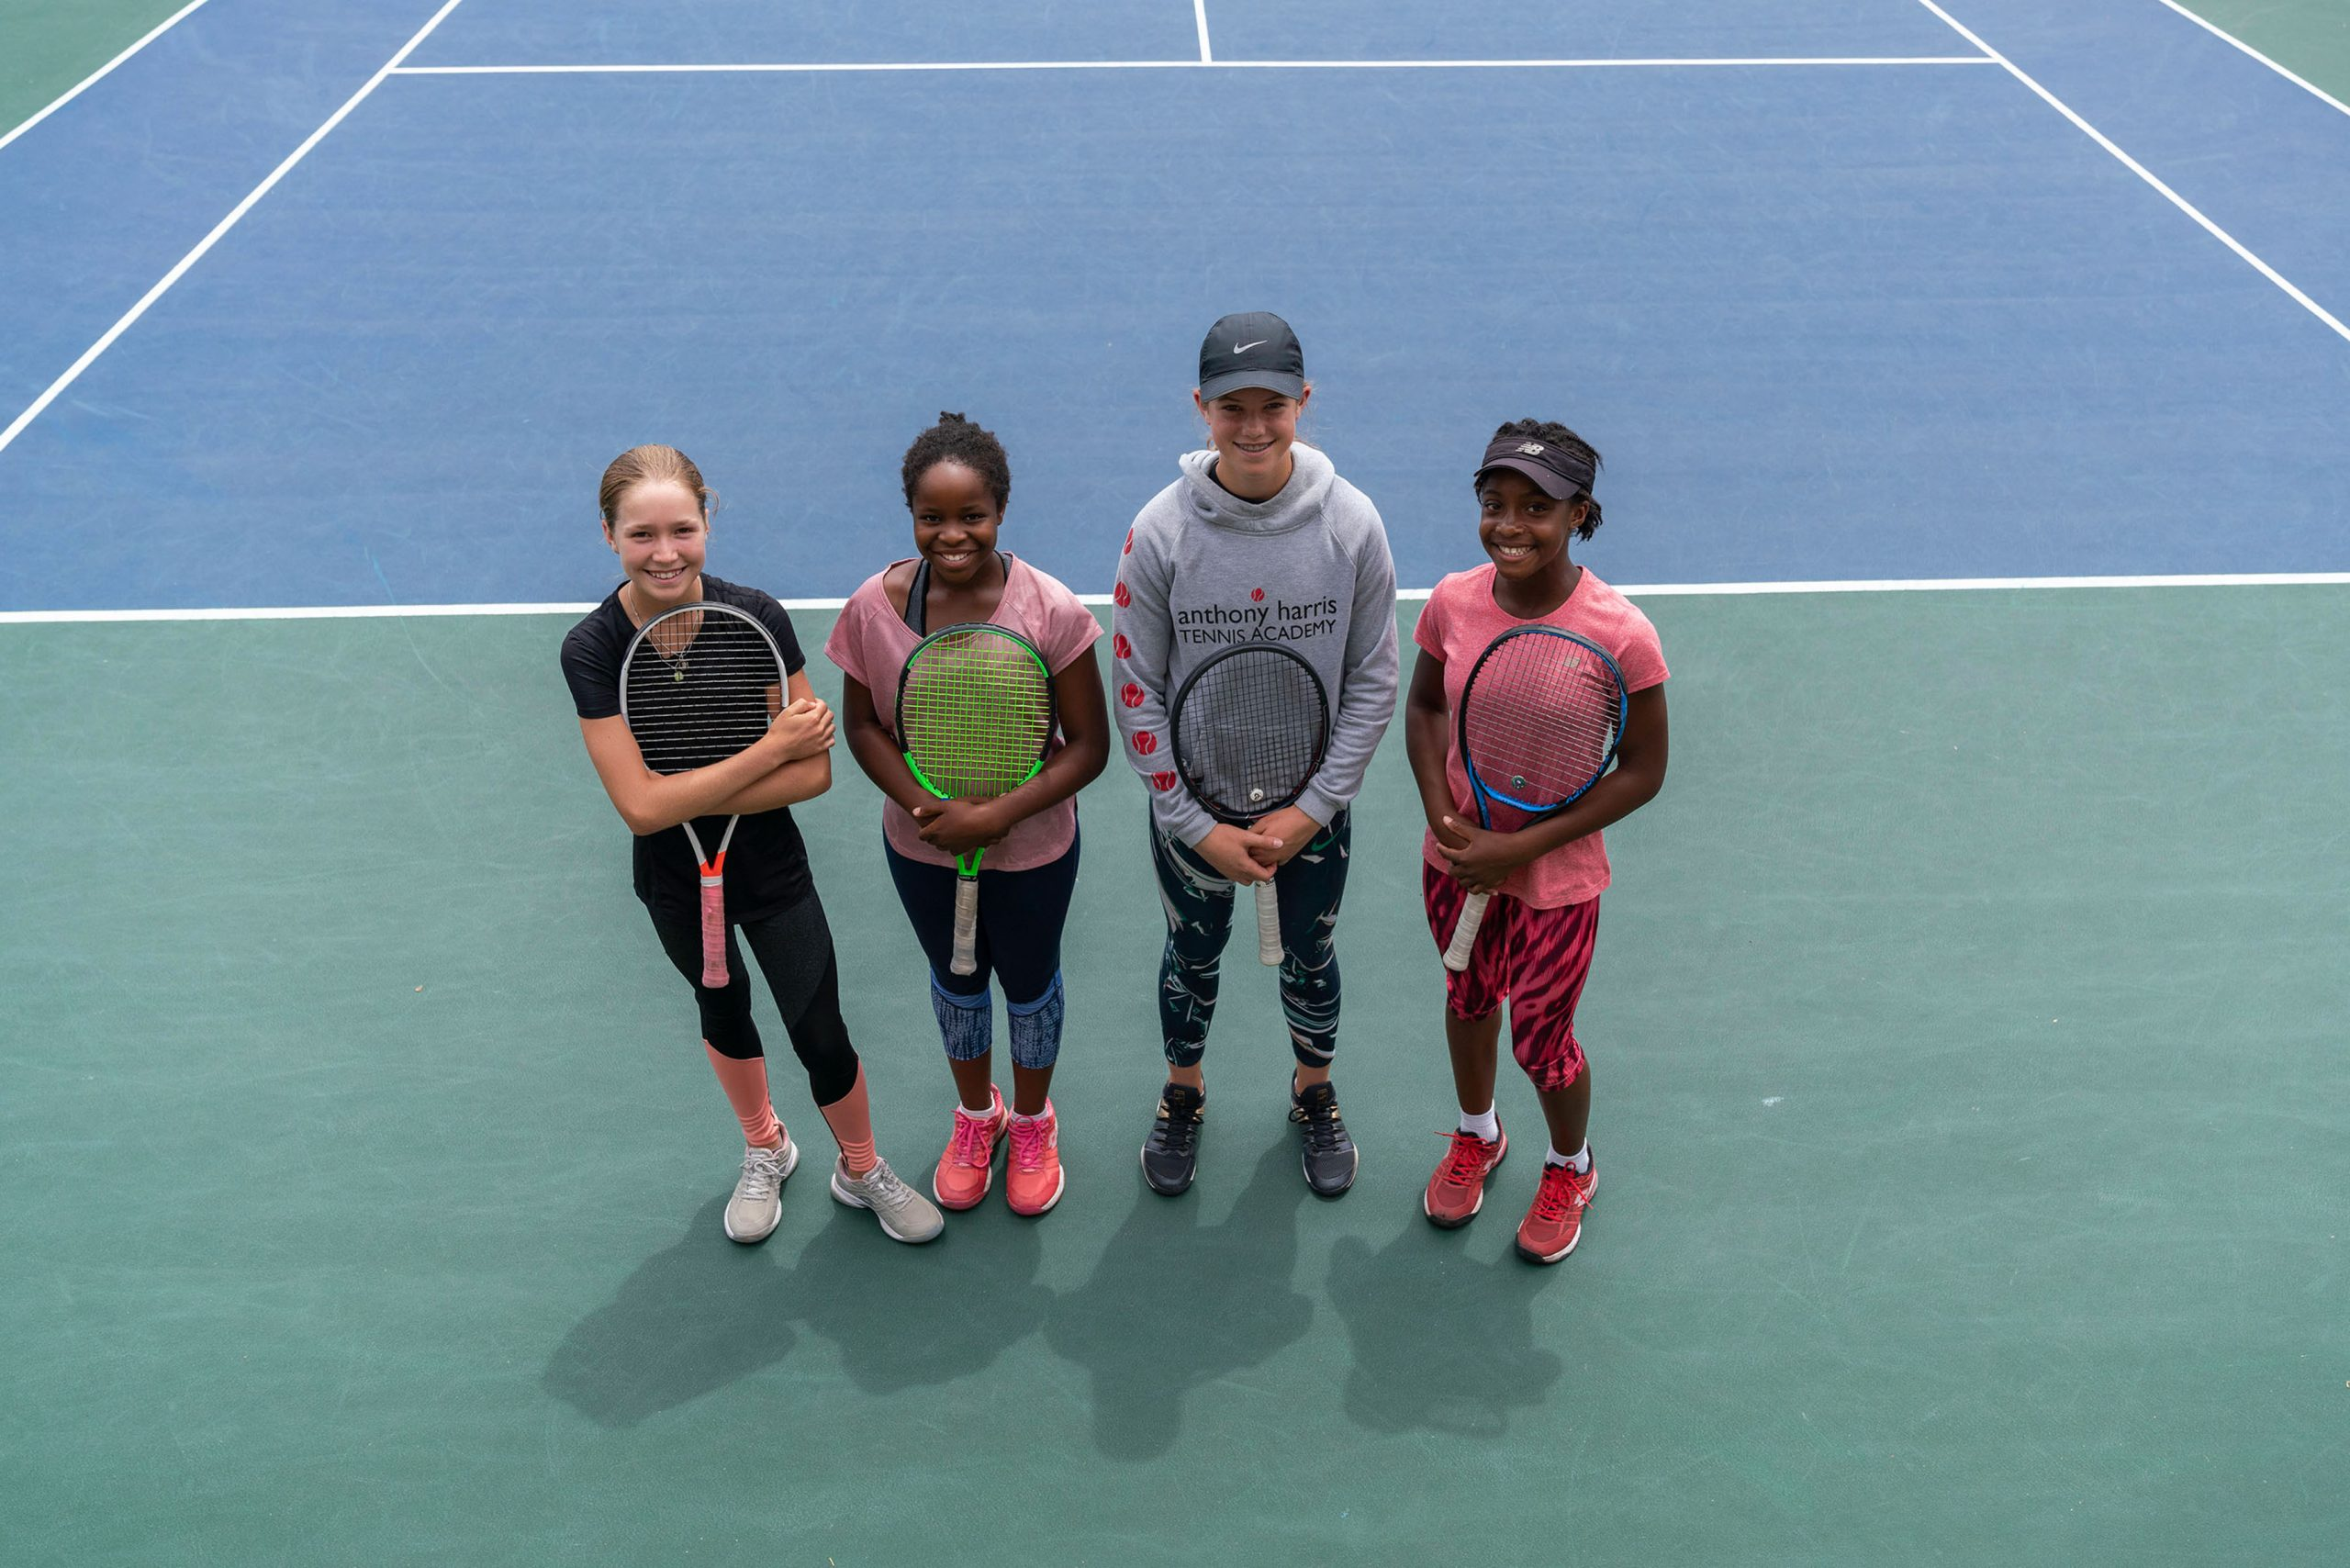 7 February 2020: From left, Ché Nel, Sasha Chimedza, Sophia Fuller and Rinnah Okanja, four of the academy's promising young players. (Photograph by Ihsaan Haffejee)